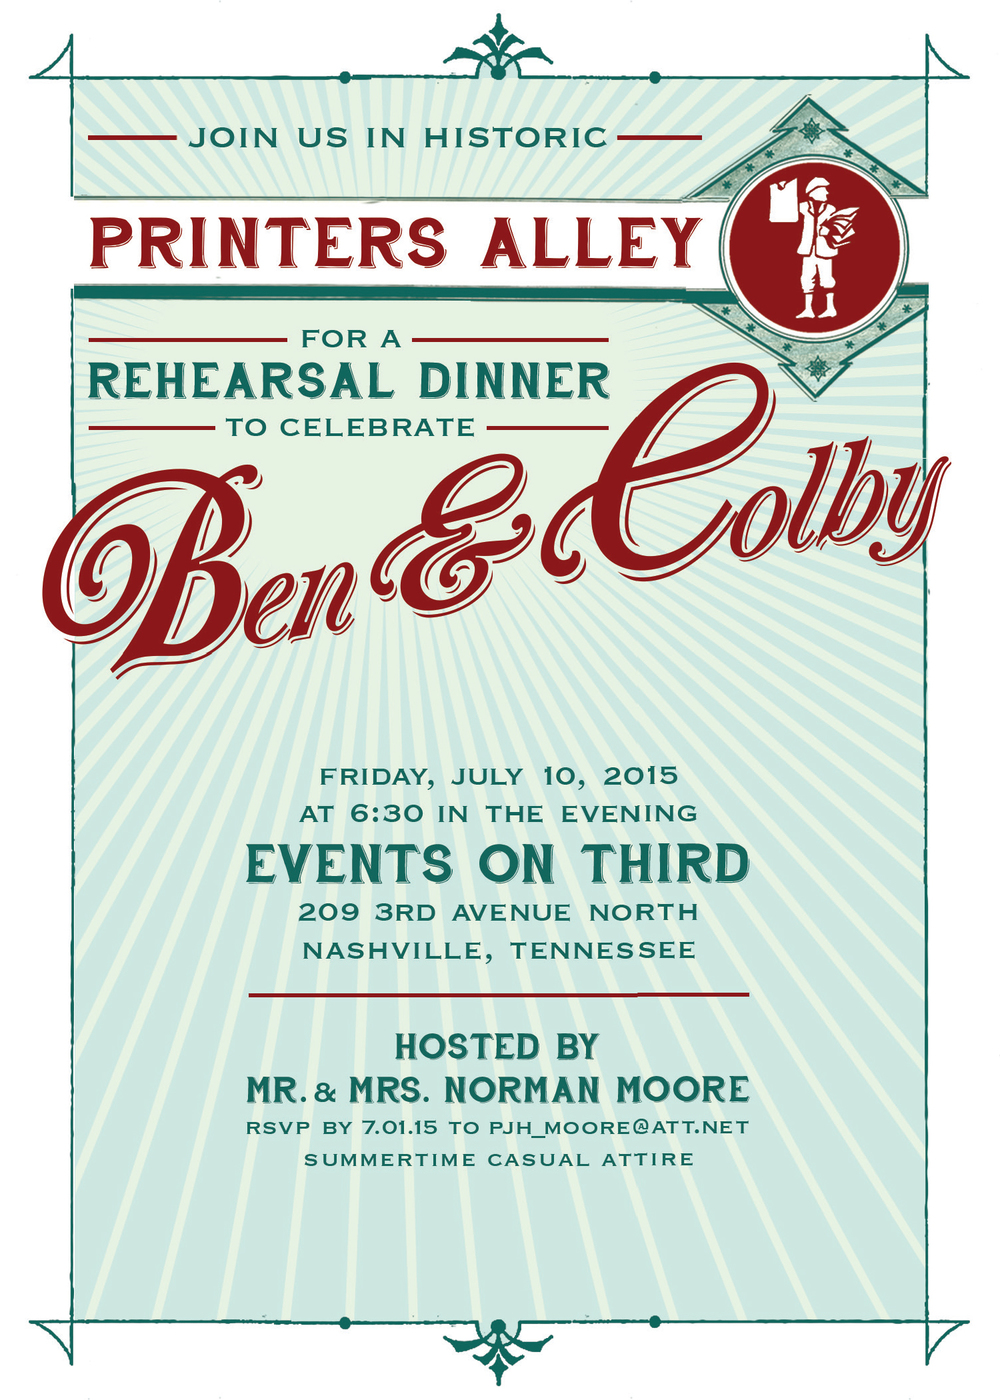 Printers-Alley-Rehearsal-Dinner.jpg